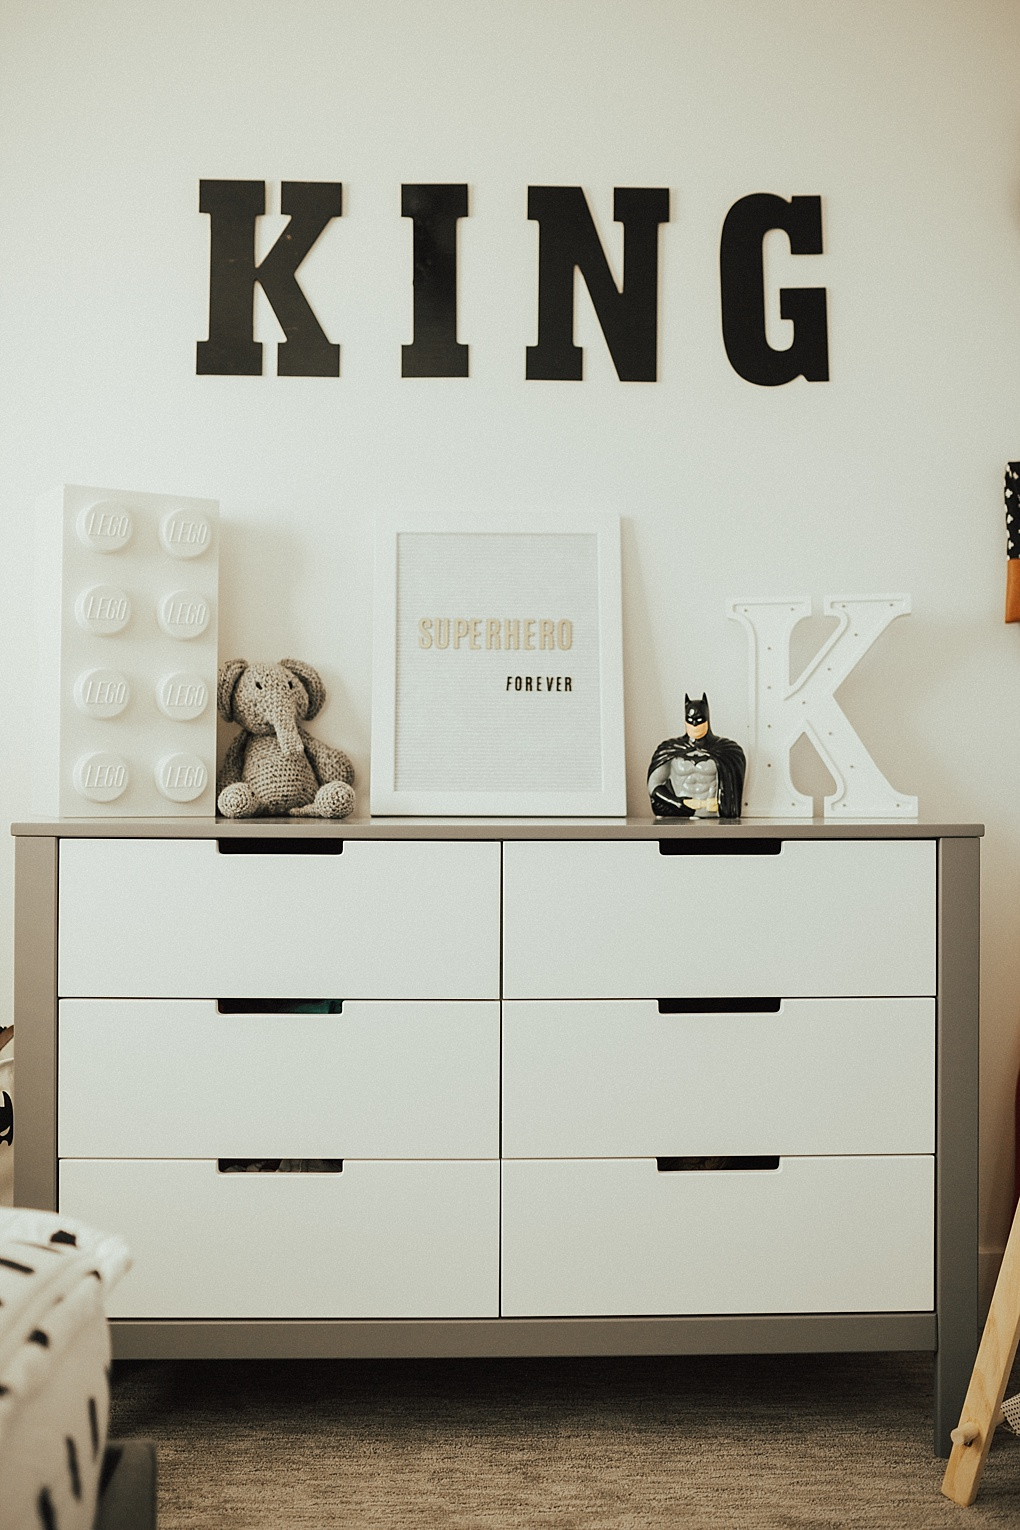 King's Modern Superhero Bedroom by Utah style blogger Dani Marie